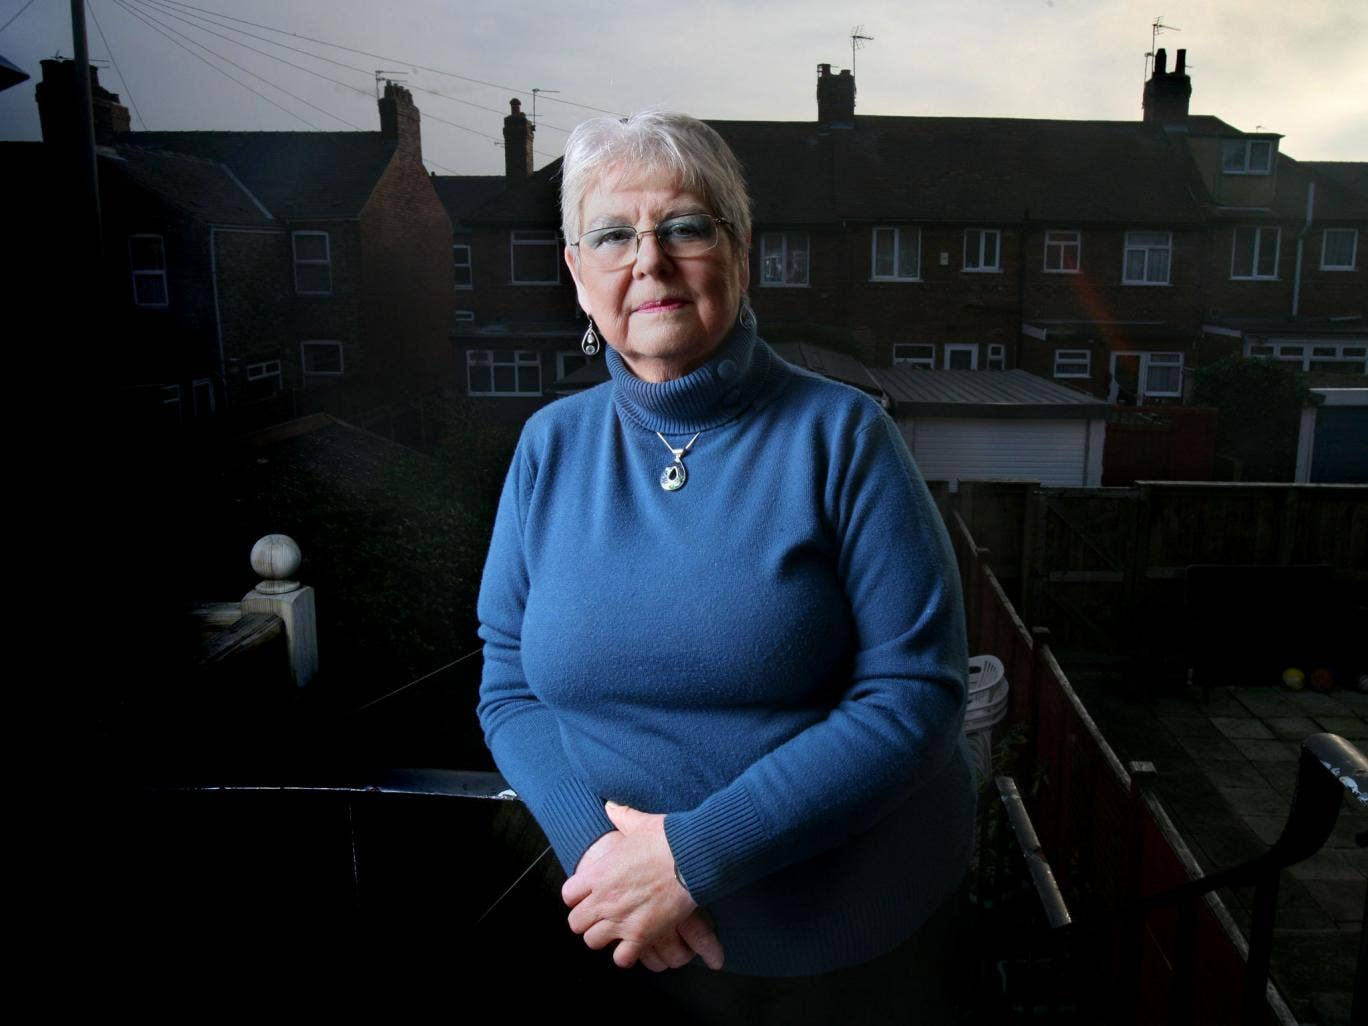 Margaret John at her home in York. She says that 'when you have cancer, you can't control it – it controls you'